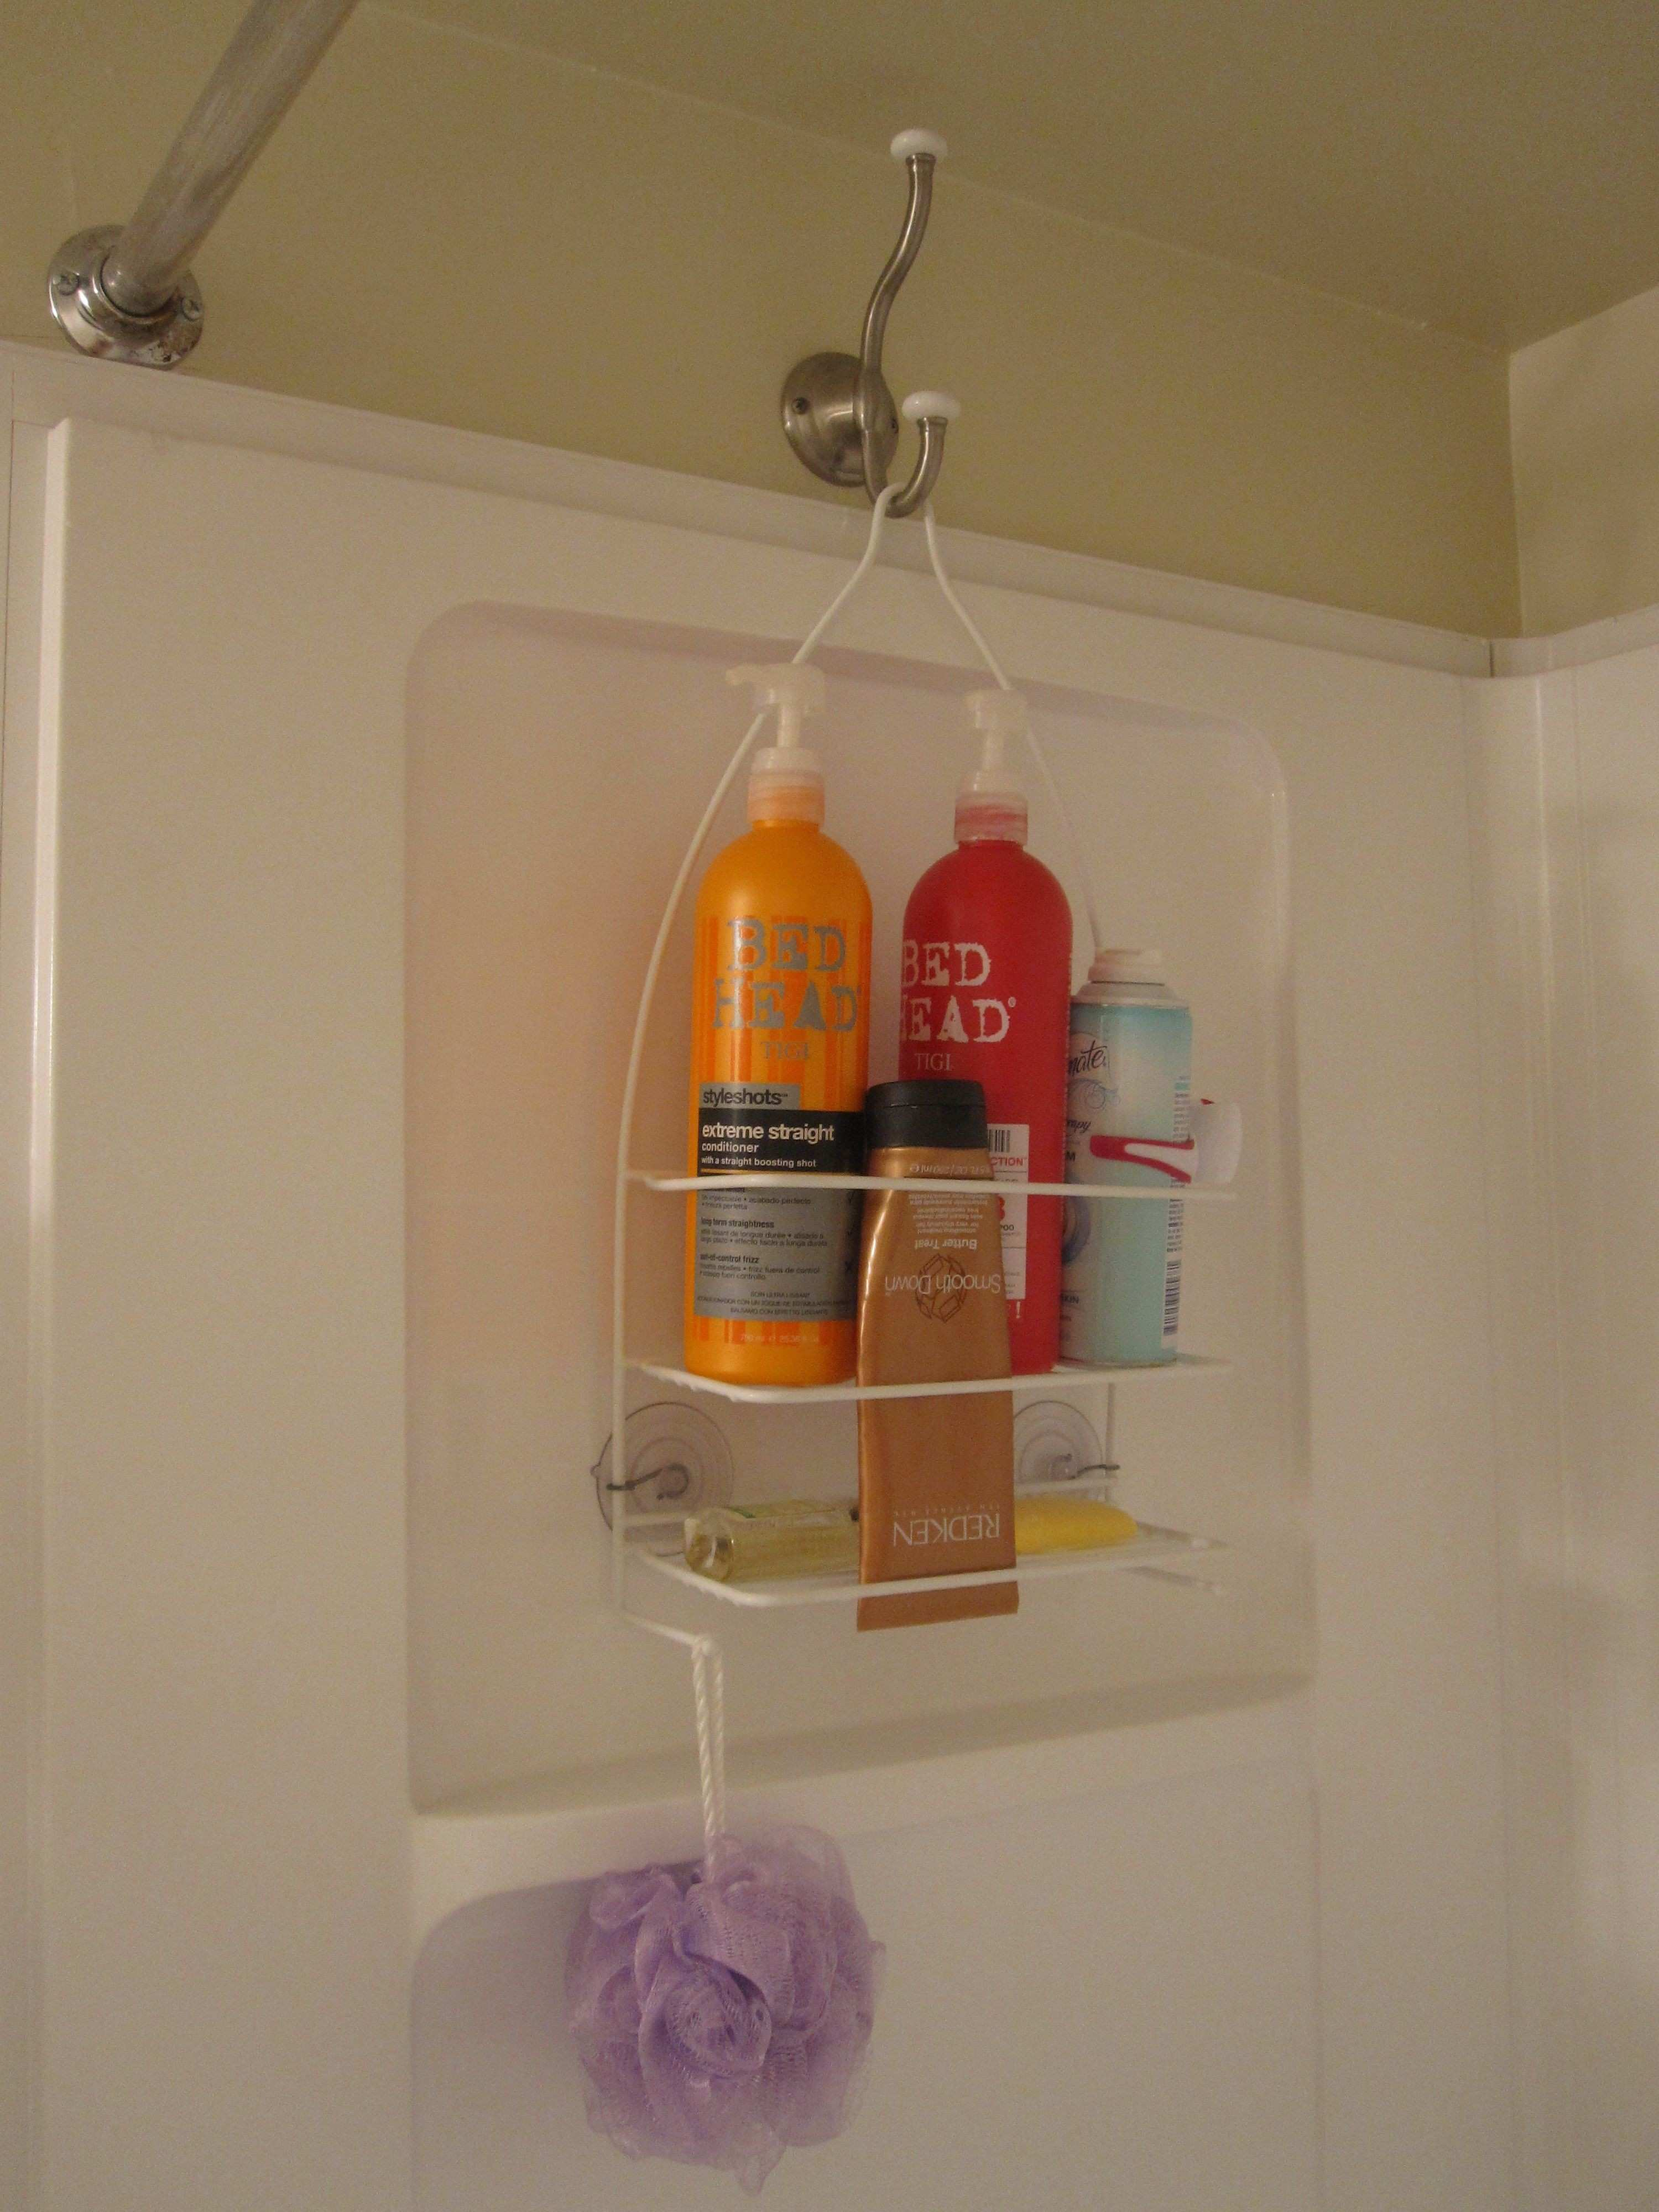 I prefer hanging my shower caddy on the opposite side of the shower